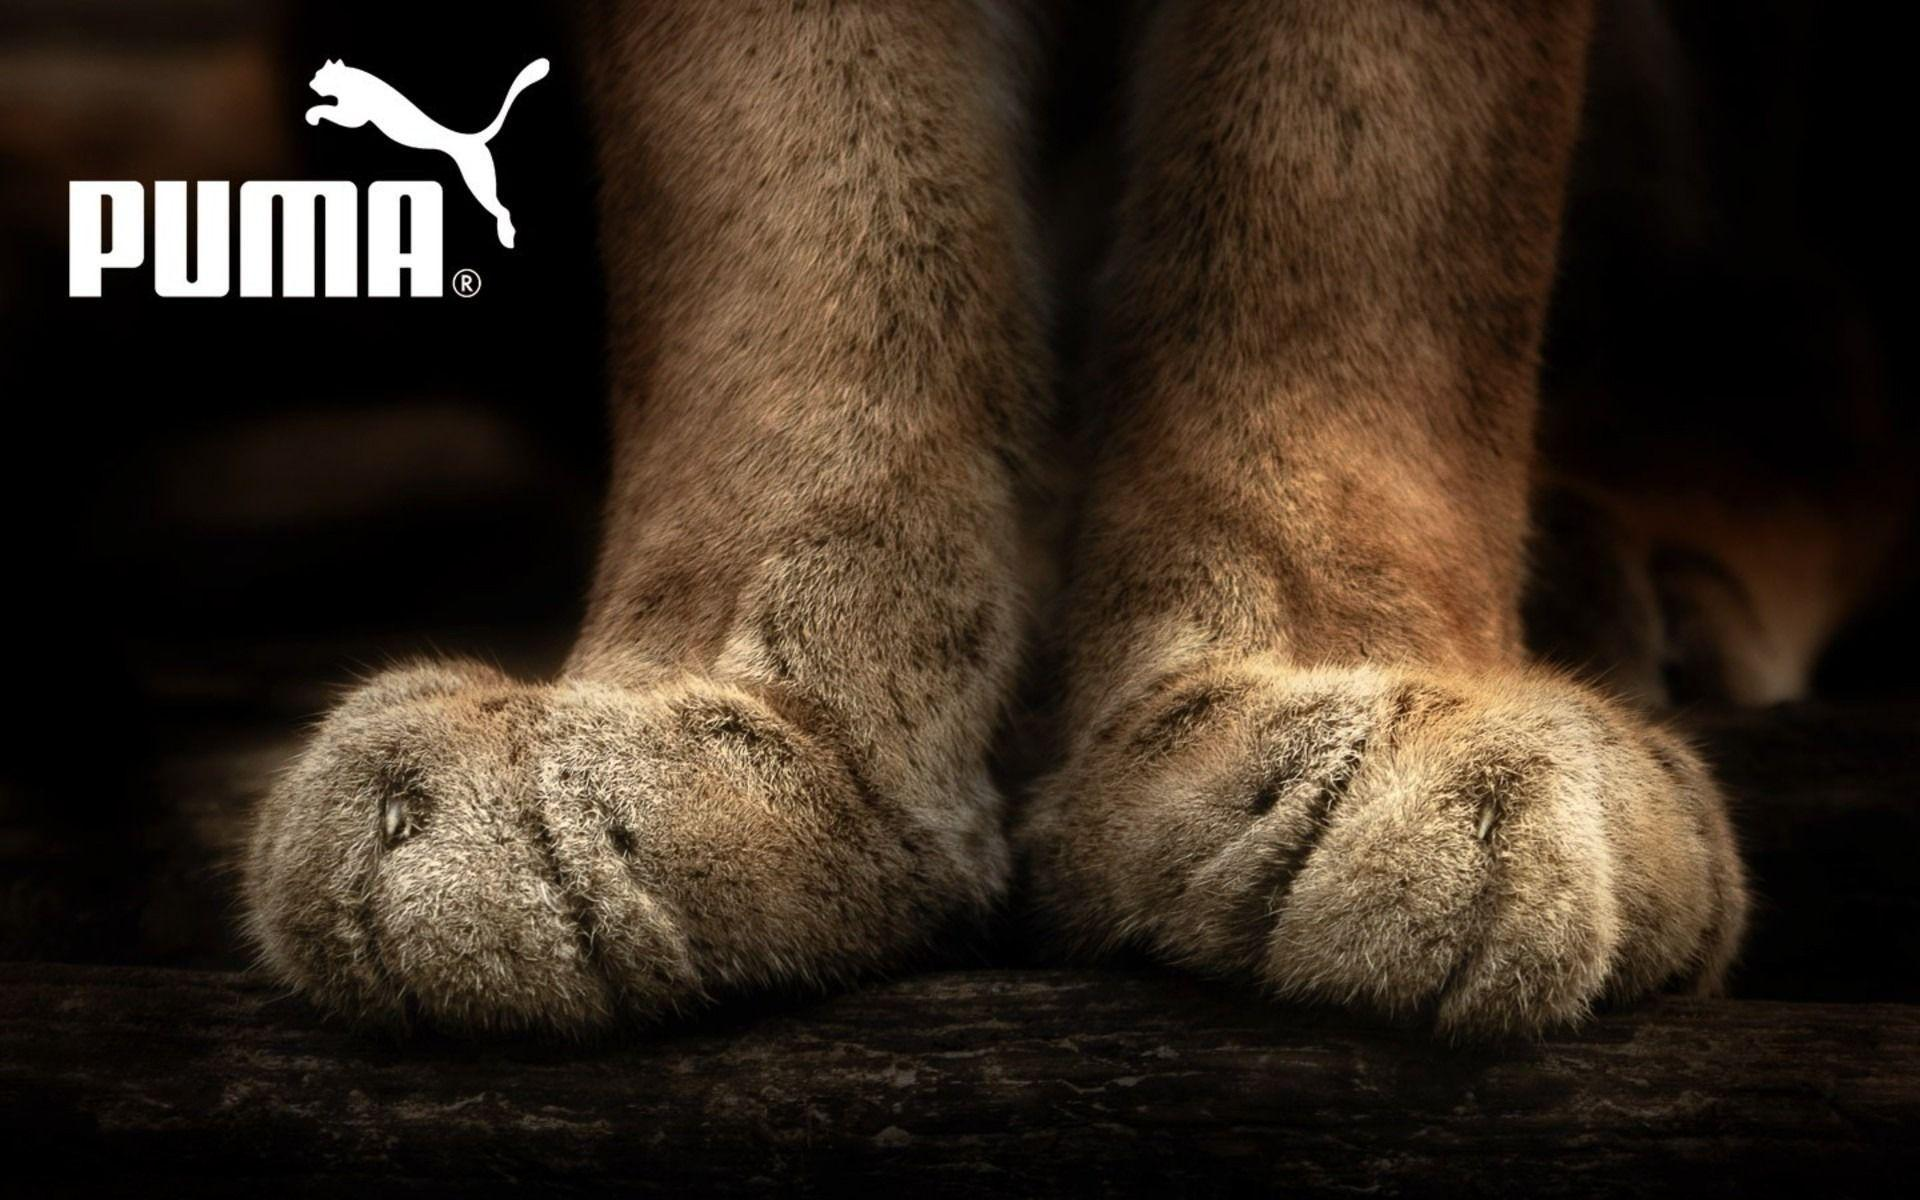 Puma wallpapers and images - wallpapers, pictures, photos